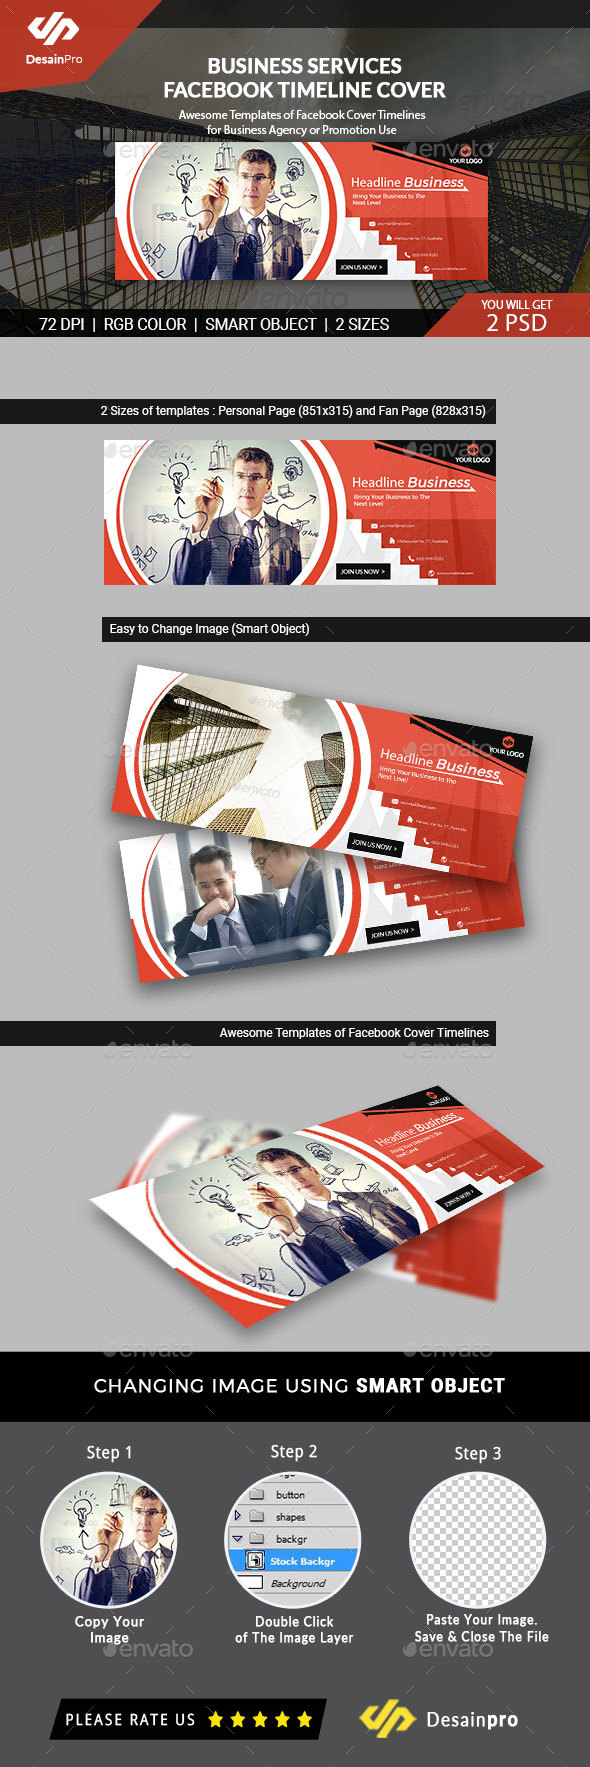 Business Corporate FB Cover Template - AR - Facebook Timeline Covers Social Media